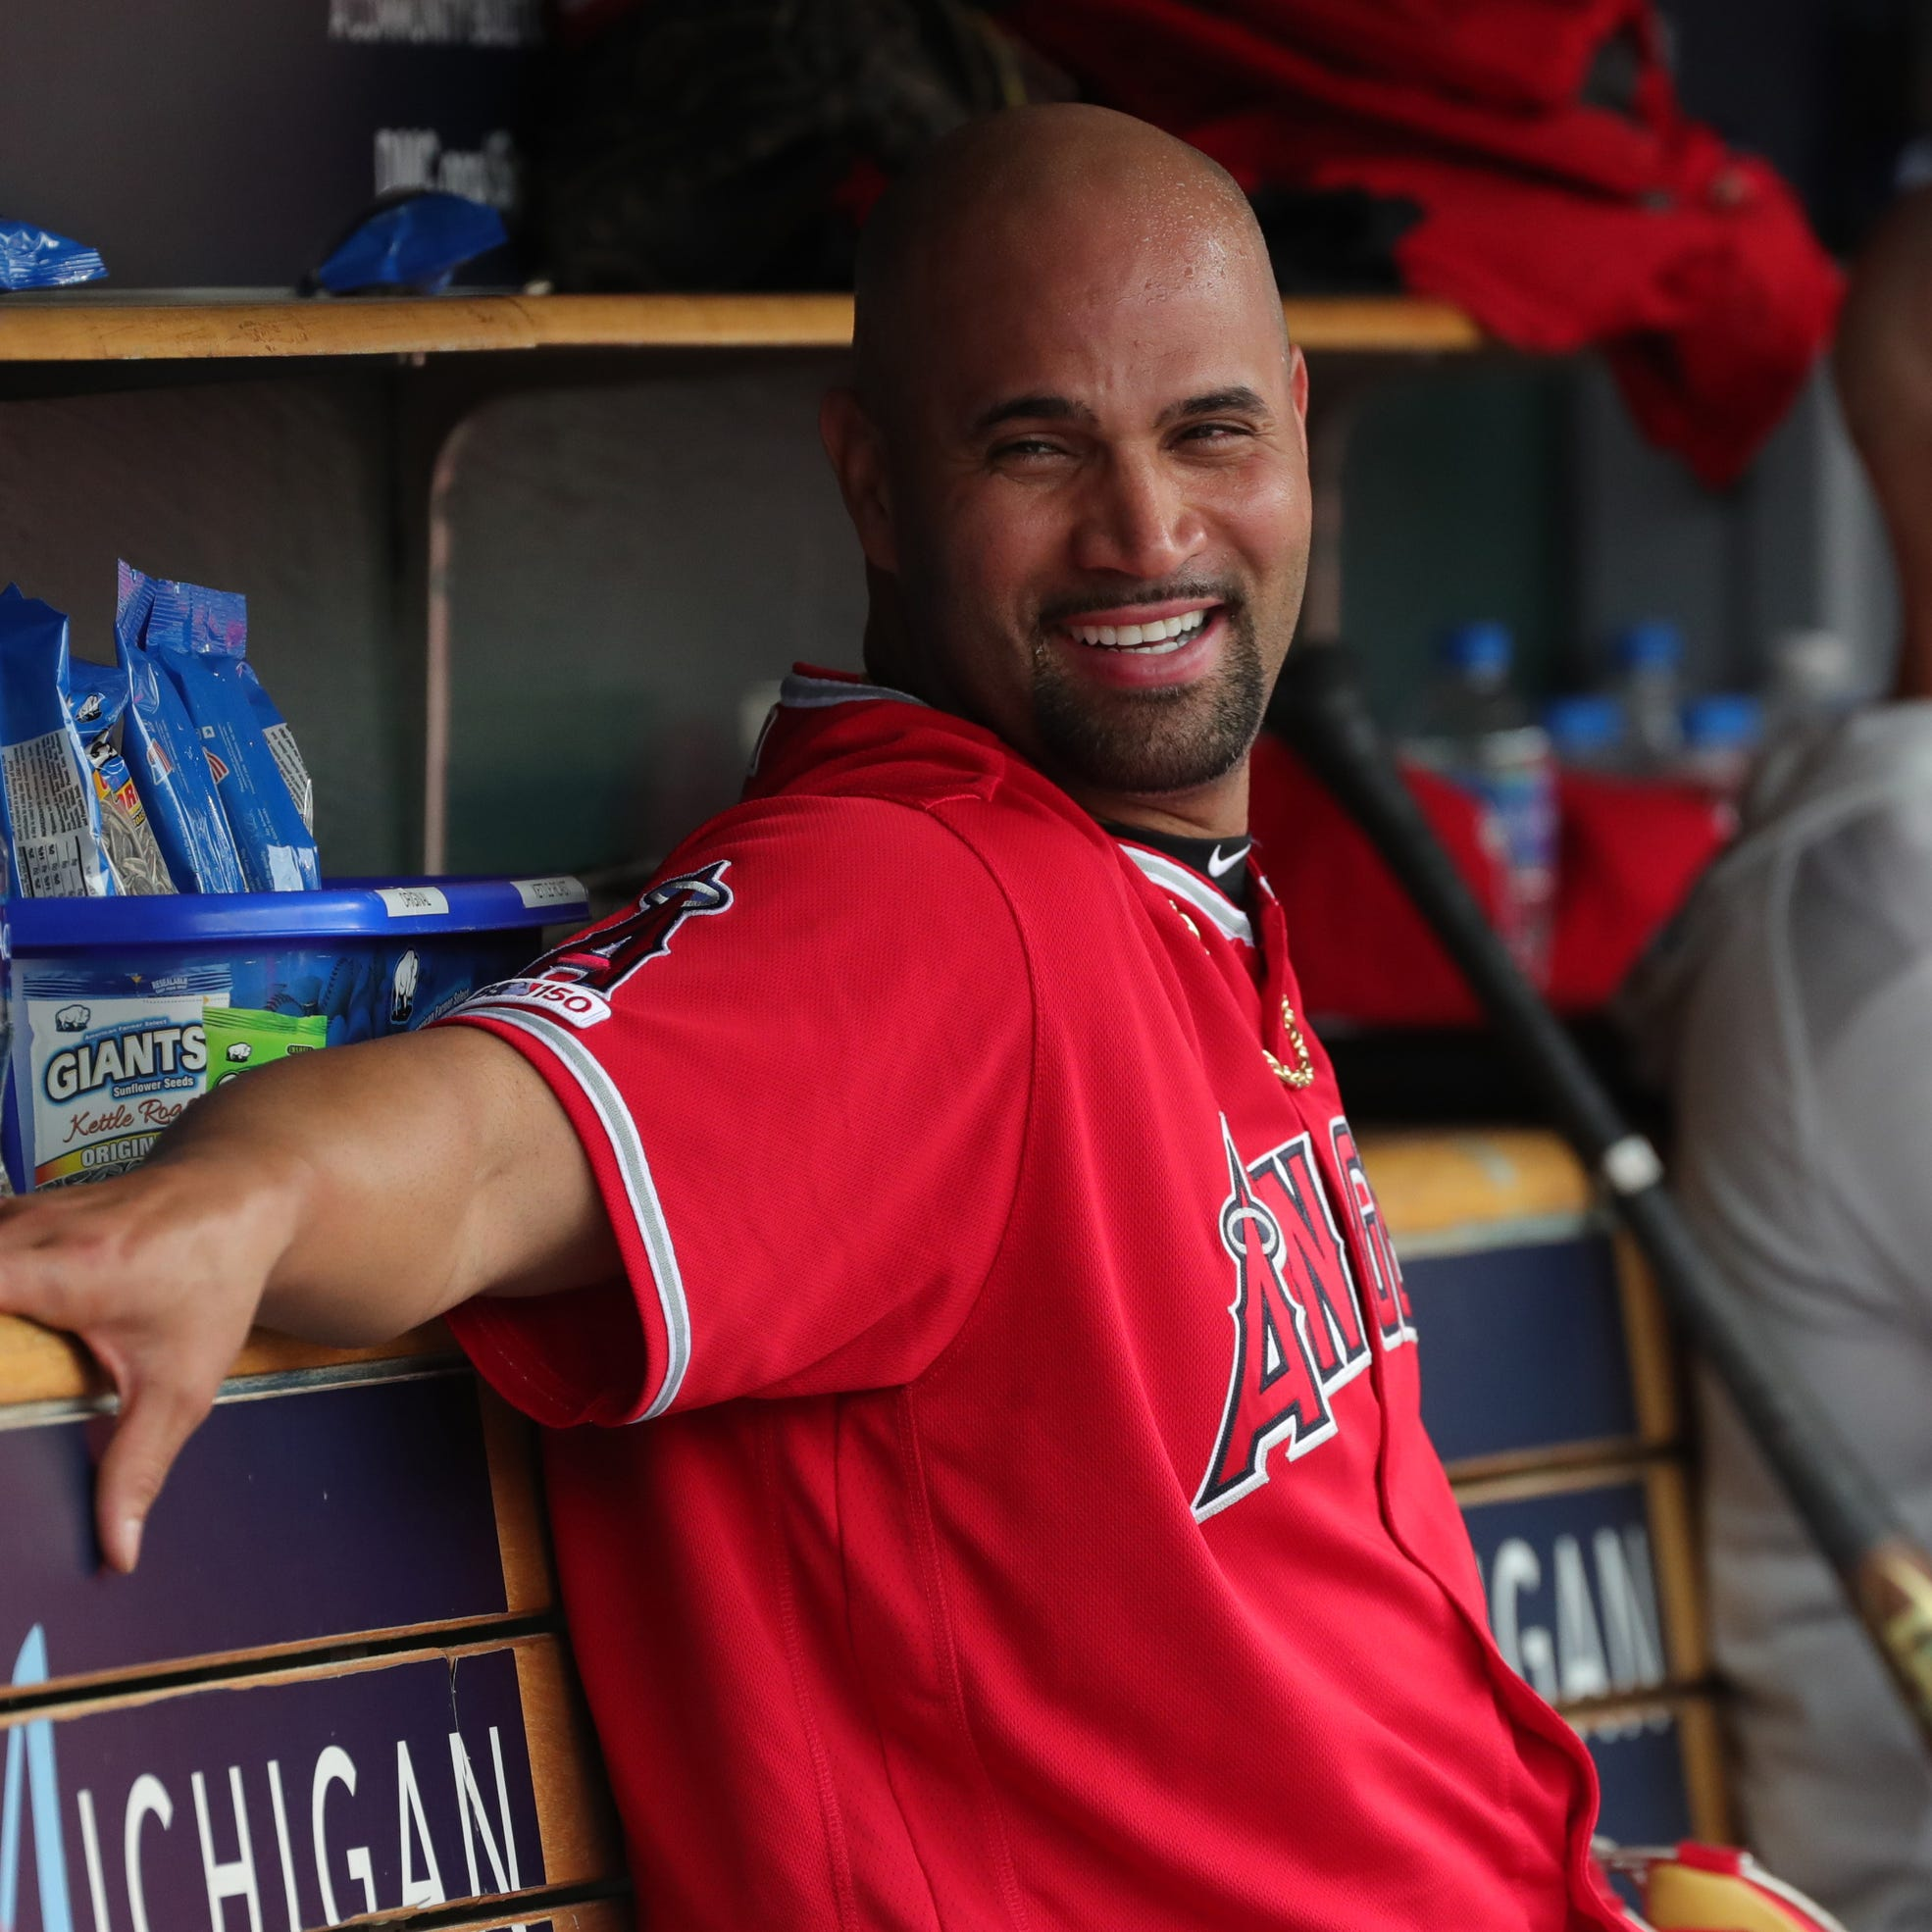 Tigers fan who got Albert Pujols' historic ball won't give it back